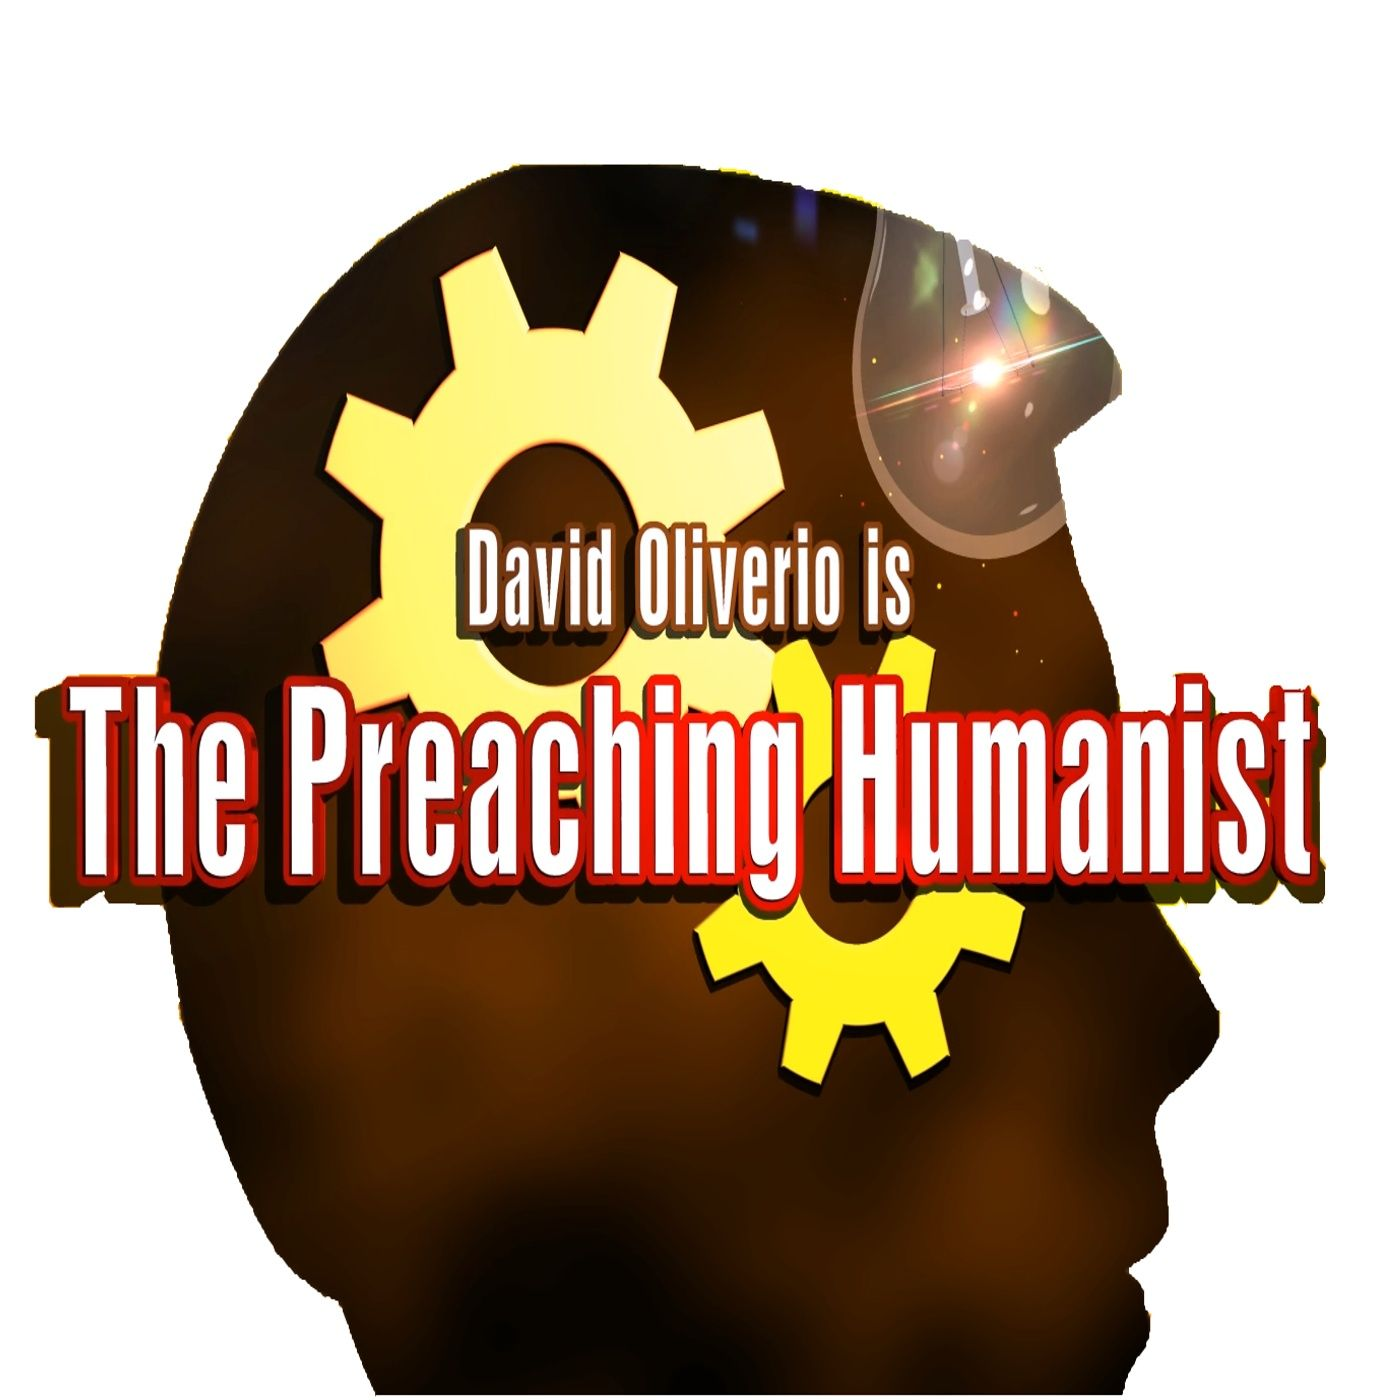 The Preaching Humanist